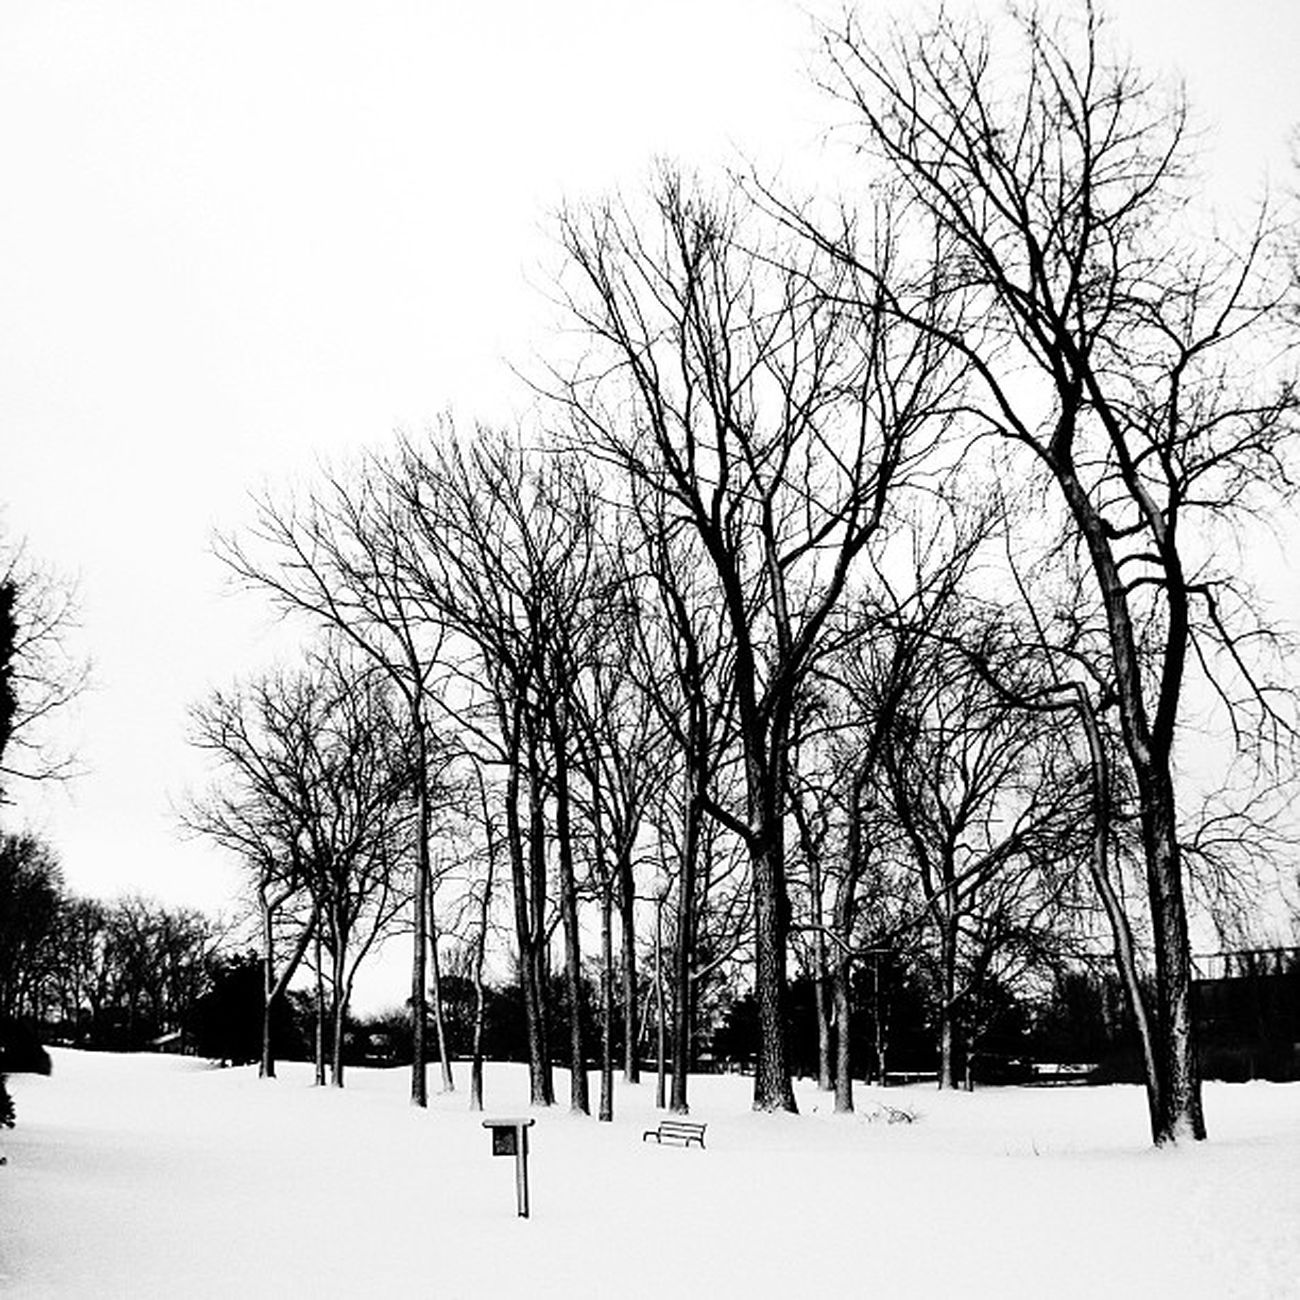 Snow on the 9th hole. #bw #bnw #bw_crew #bw_lovers #bwmasters #most_deserving_bw #insta_pic_bw Bw Bnw Bwmasters Bw_lovers Bw_crew Most_deserving_bw Ic_trees Insta_pic_bw Branching_out